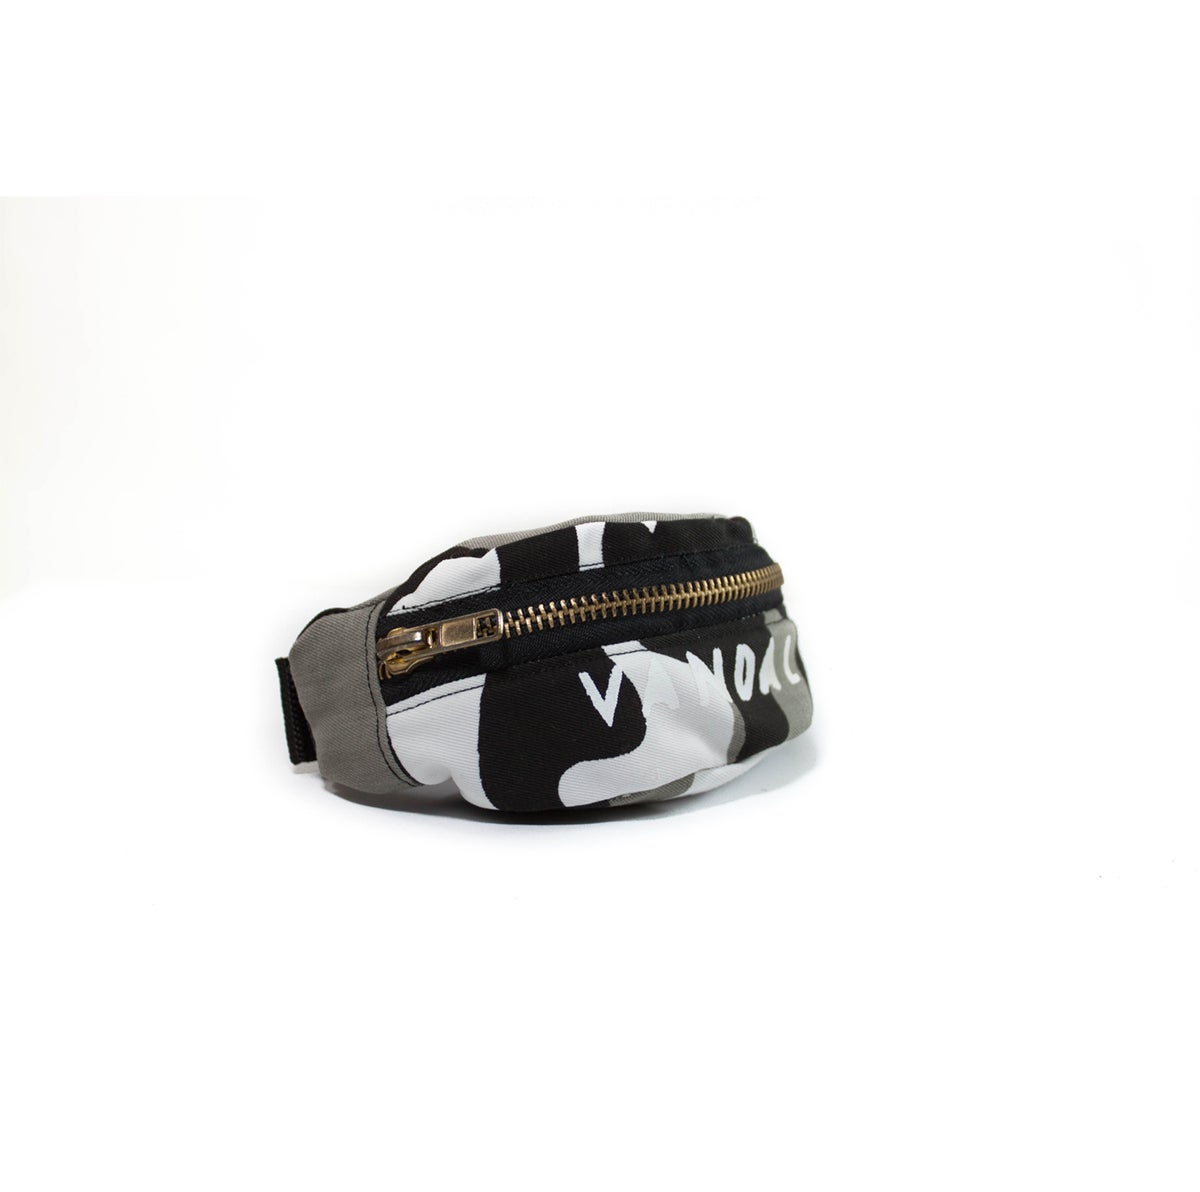 Image of VANDAL CAMO MINI BUM BAG